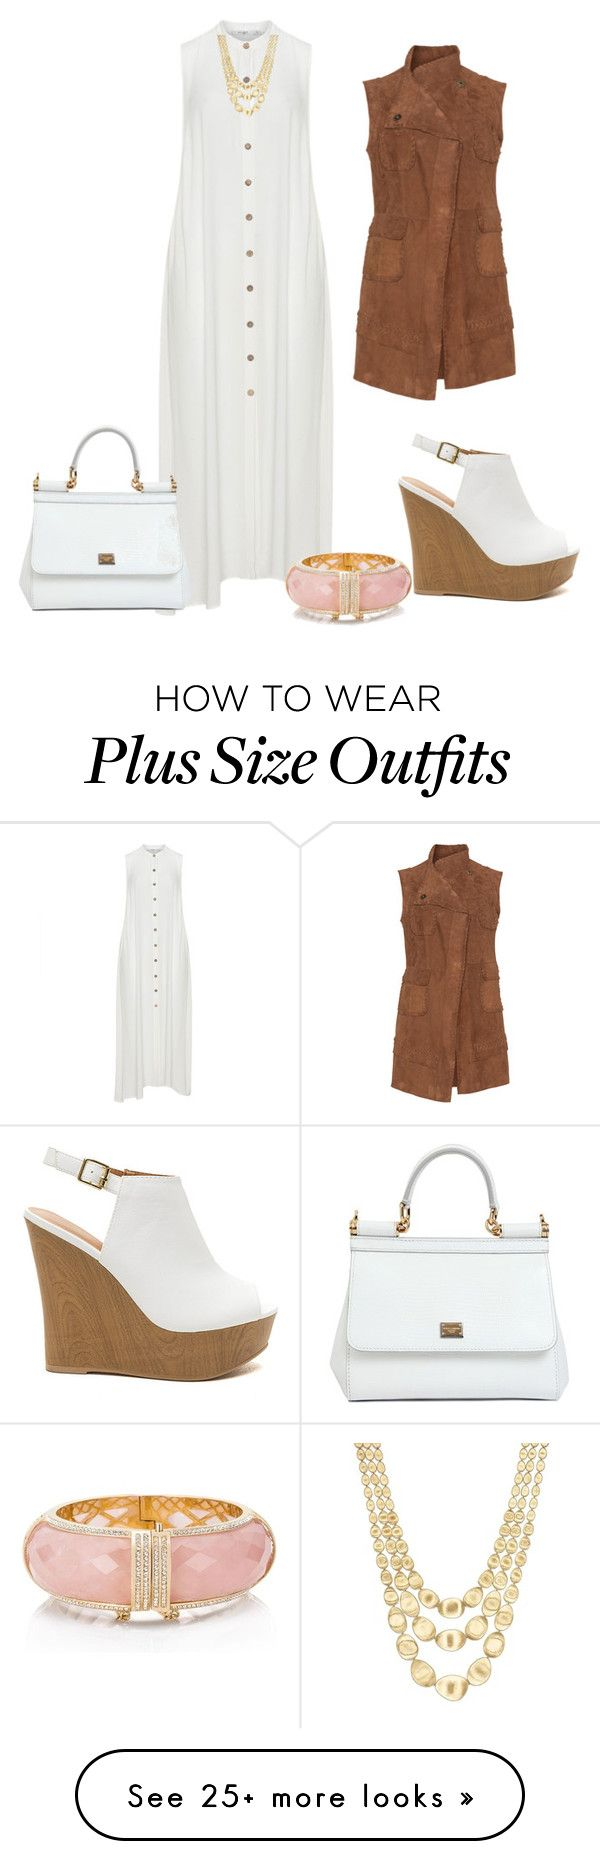 """""""Plus size outfit"""" by sharon-chetty on Polyvore featuring Mat, Marco Bicego, Kate Spade and Dolce&Gabbana"""